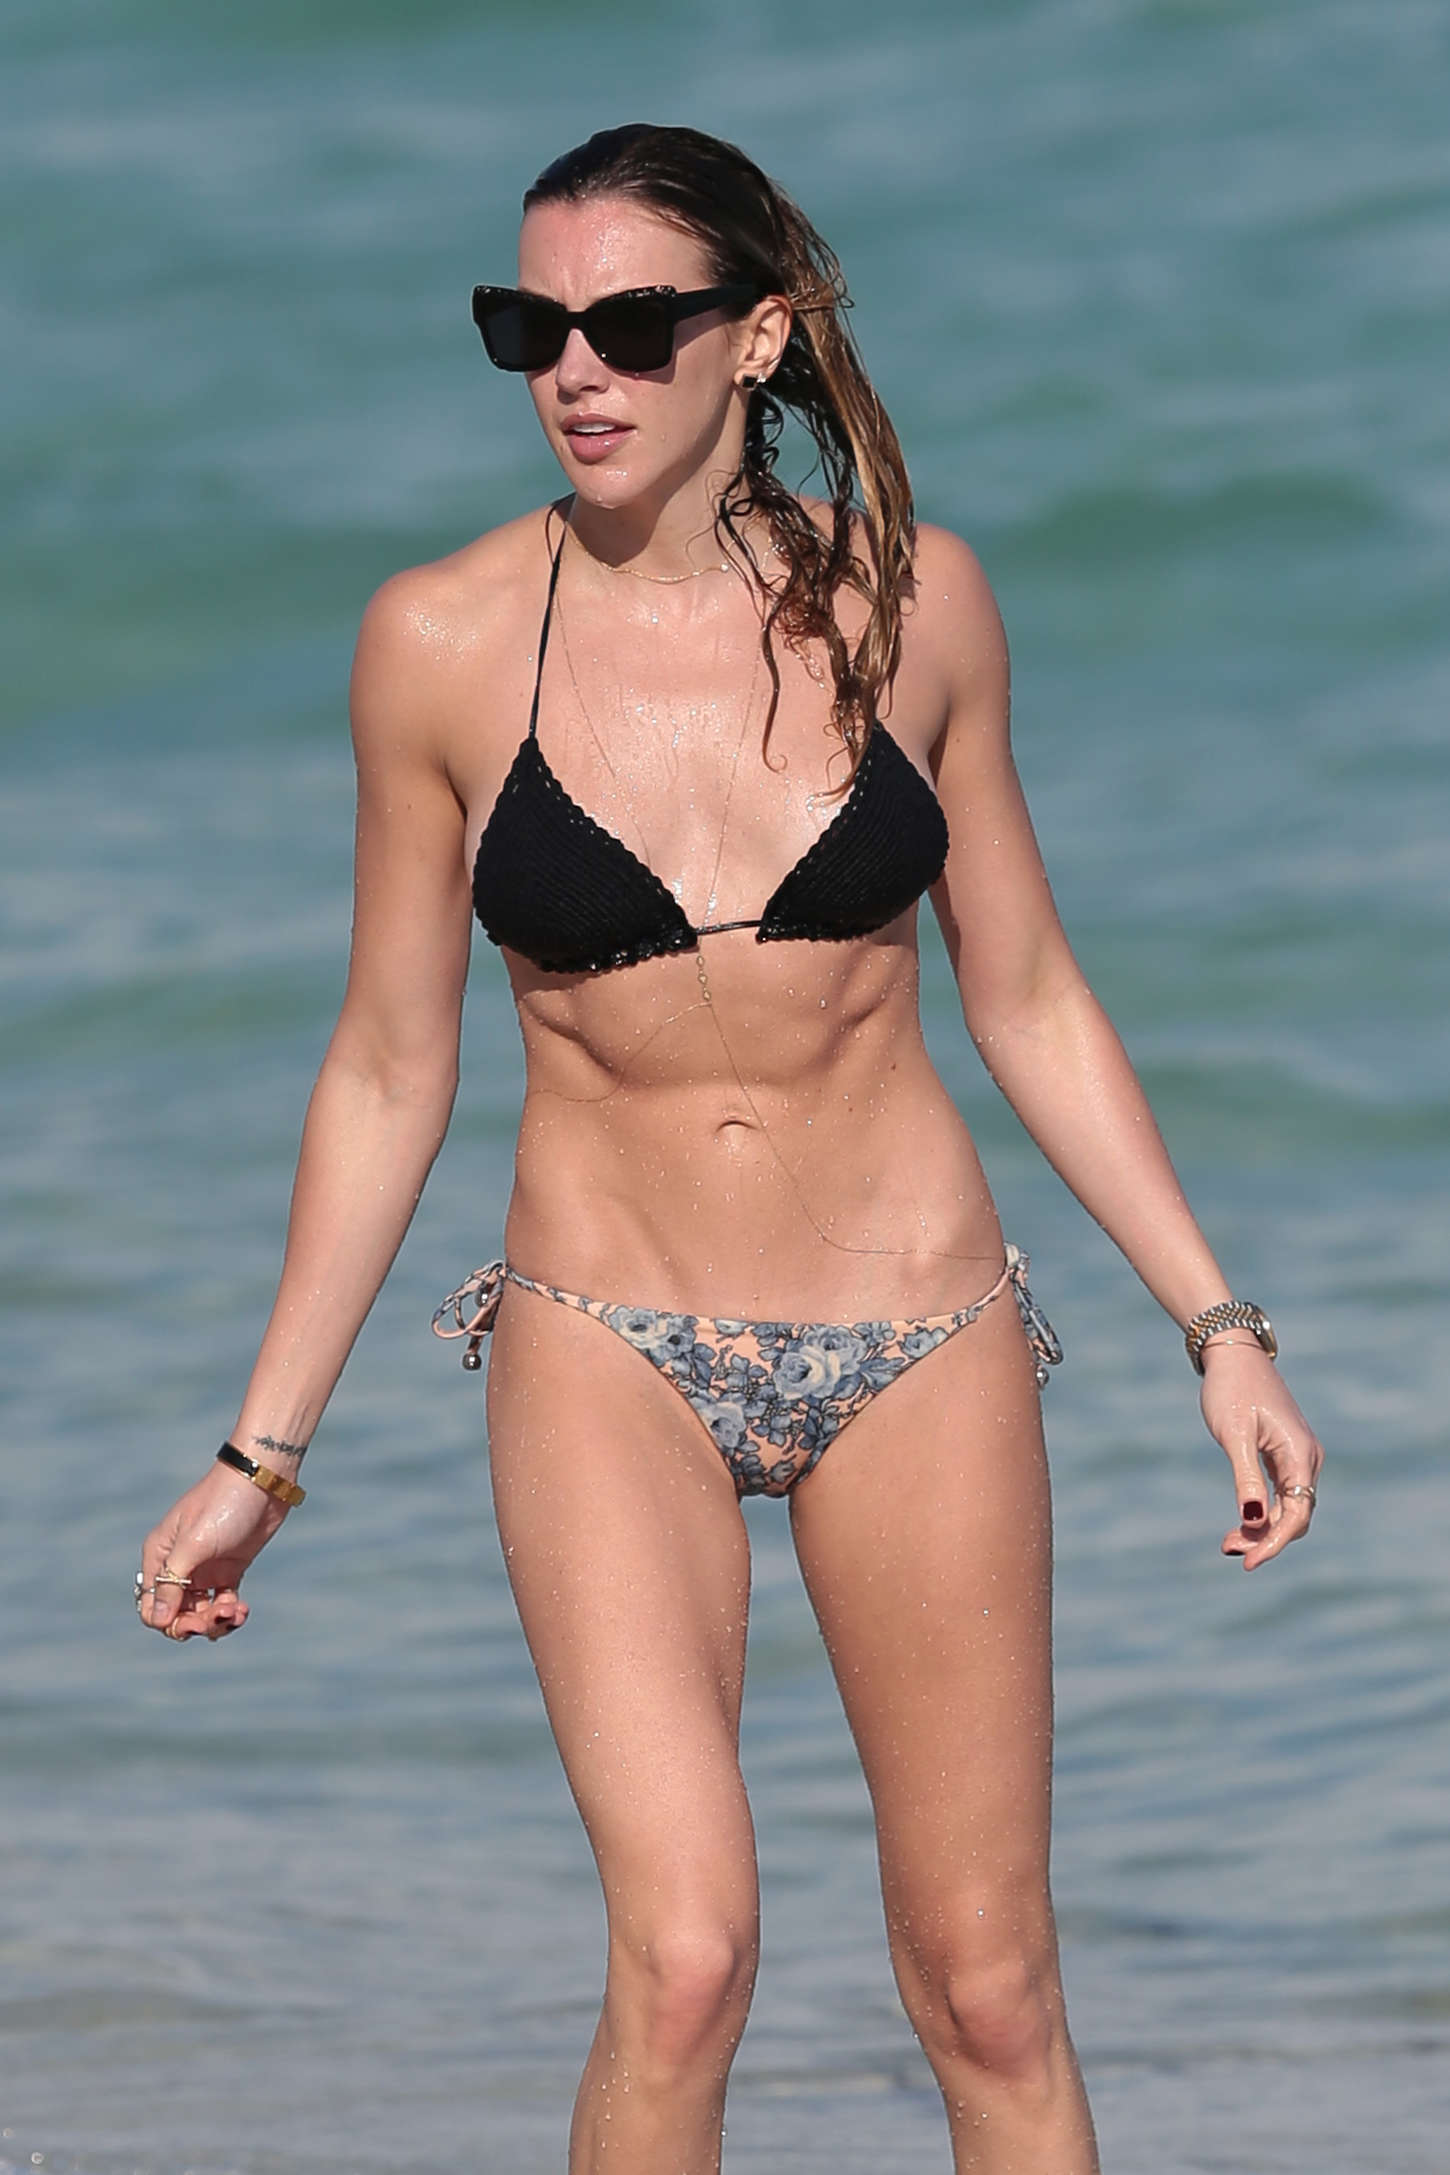 Back to FULL gallery Katie Cassidy in Bikini on the Beach in Miami: gotceleb.com/katie-cassidy-in-bikini-on-the-beach-in-miami-2014-12...